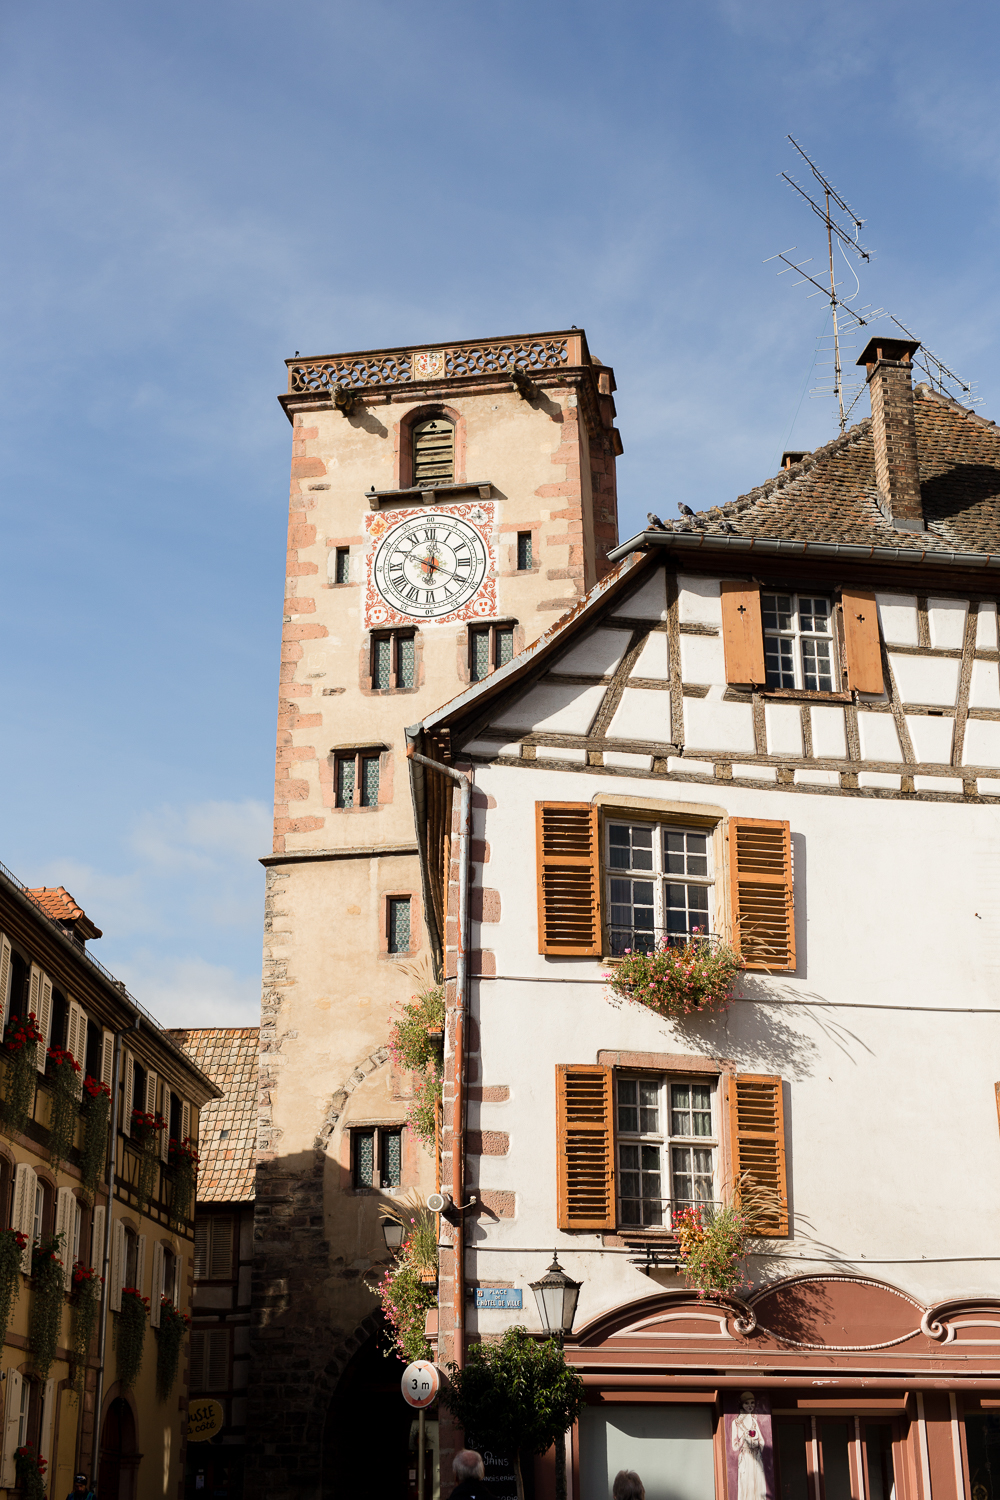 weekend-in-alsace-Ribeauvillé-best-place-to-visit-france-6.jpg